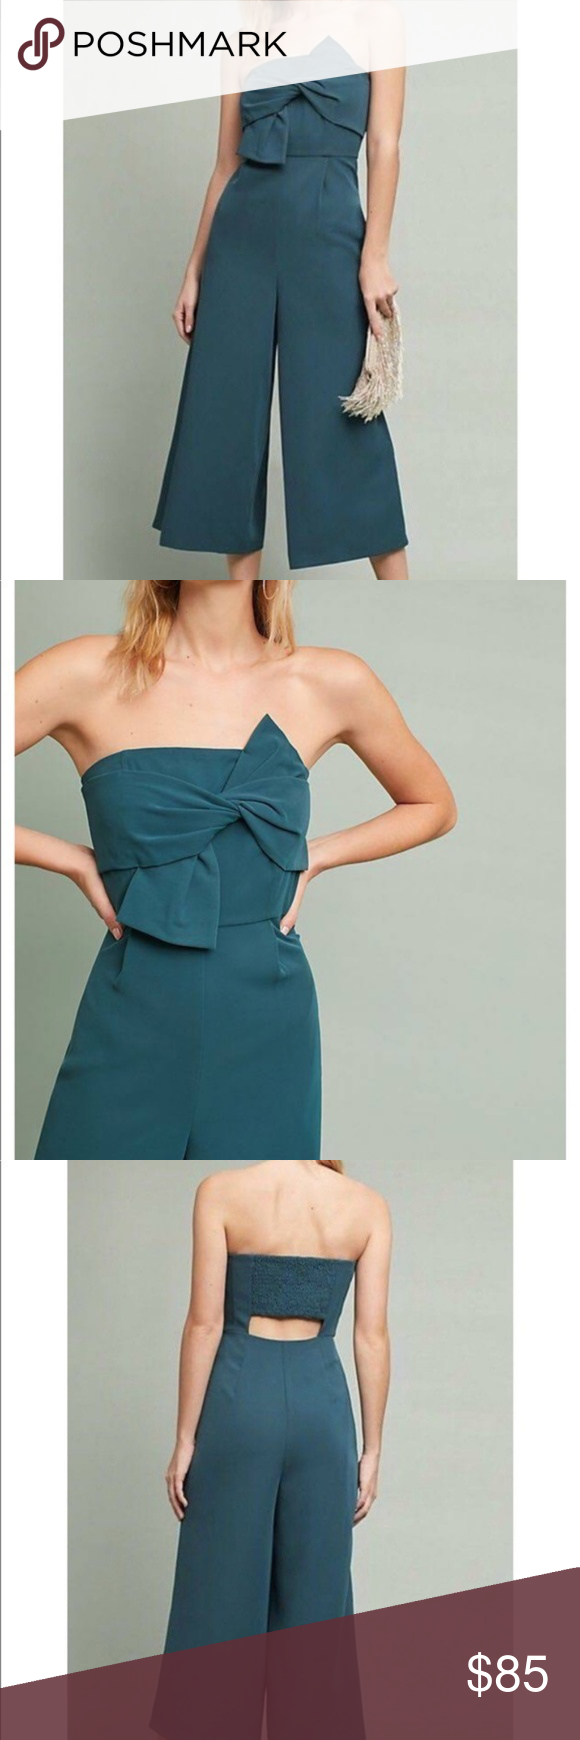 4e762c4776e0 Anthropologie Hailee C Strapless Bow Crop Jumpsuit Anthropologie Hailee C  Strapless Bow Front Green Crop Flare Jumpsuit Brand new with tags!